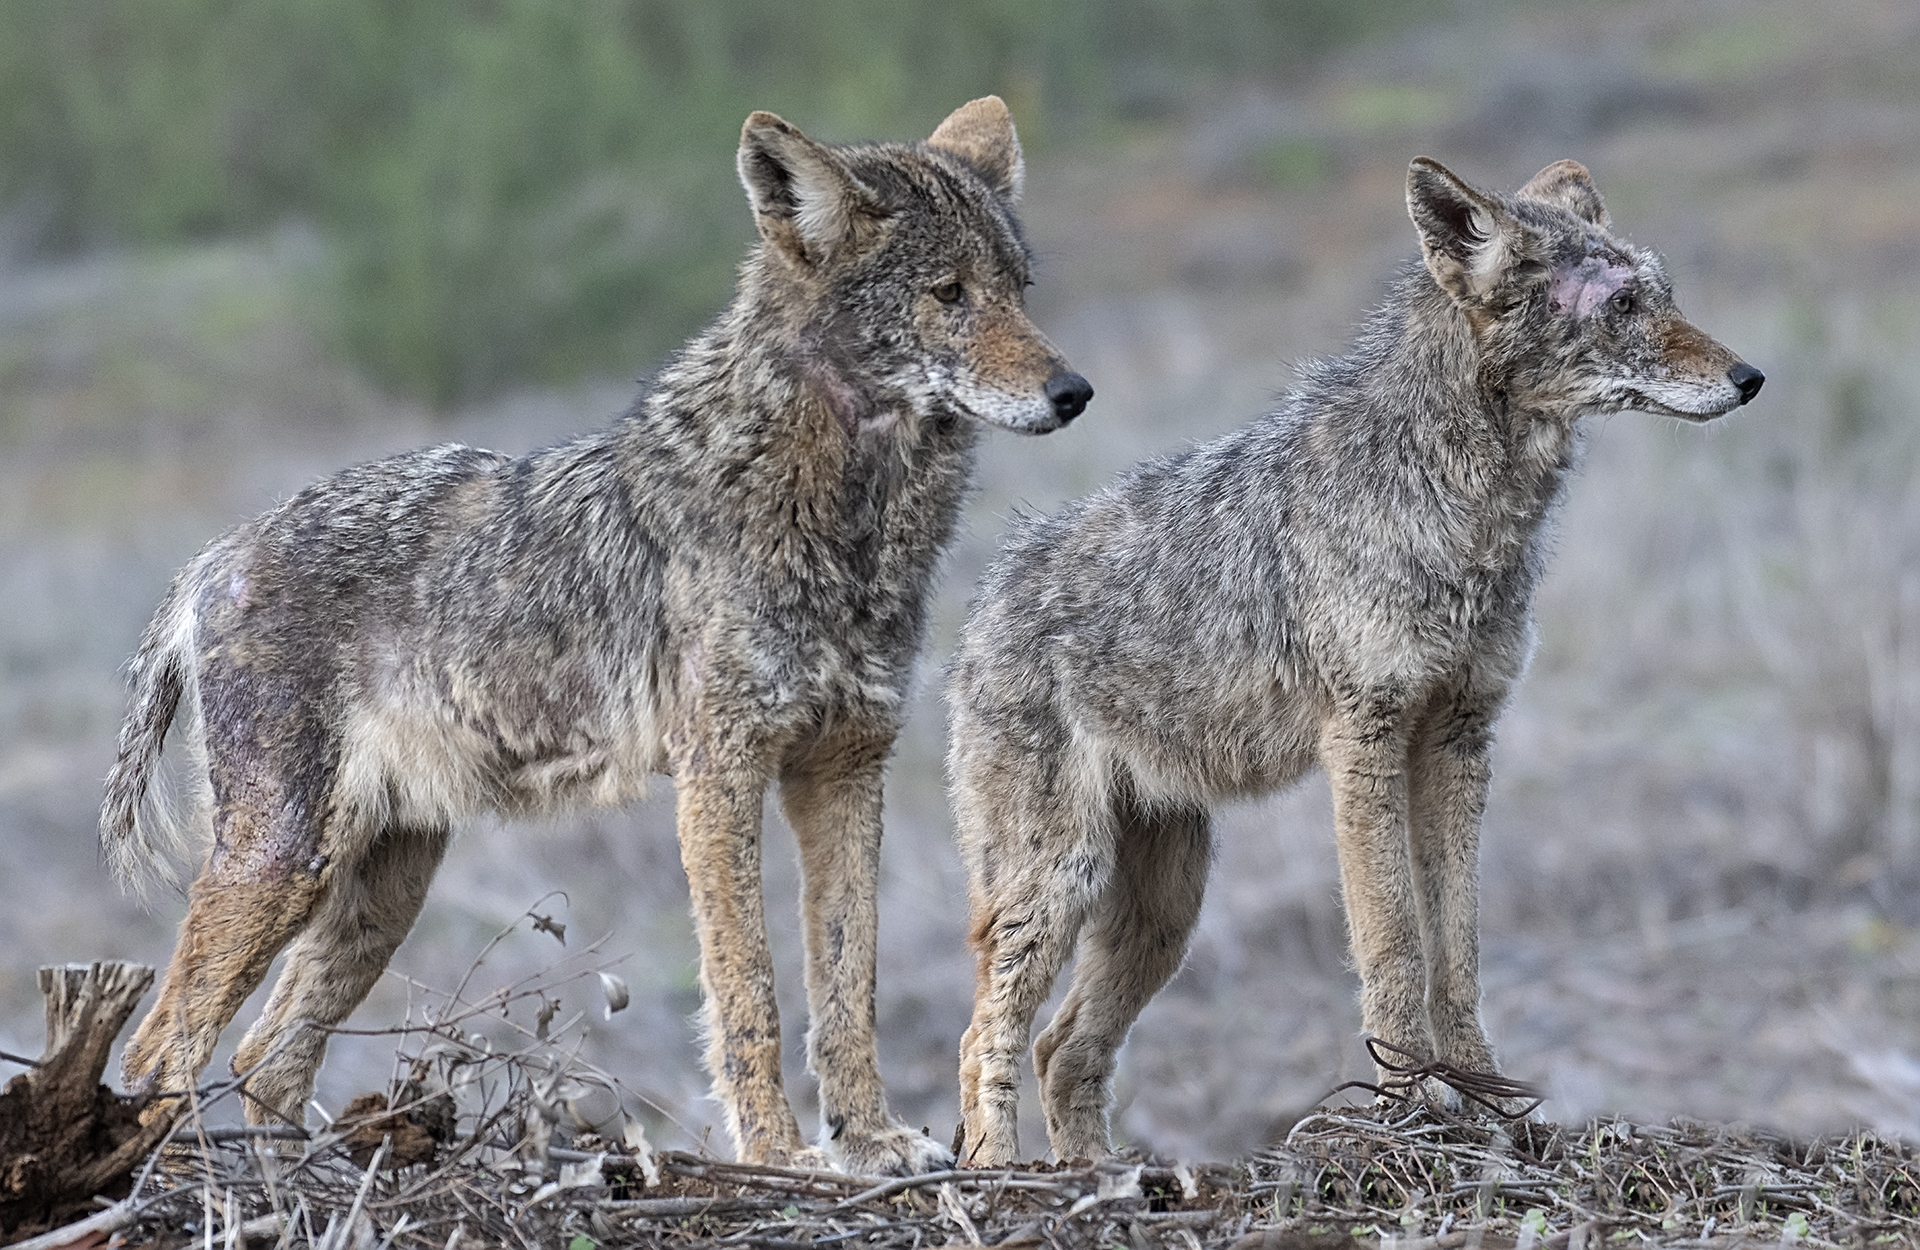 Coyotes with Mange (Beginning Stages)